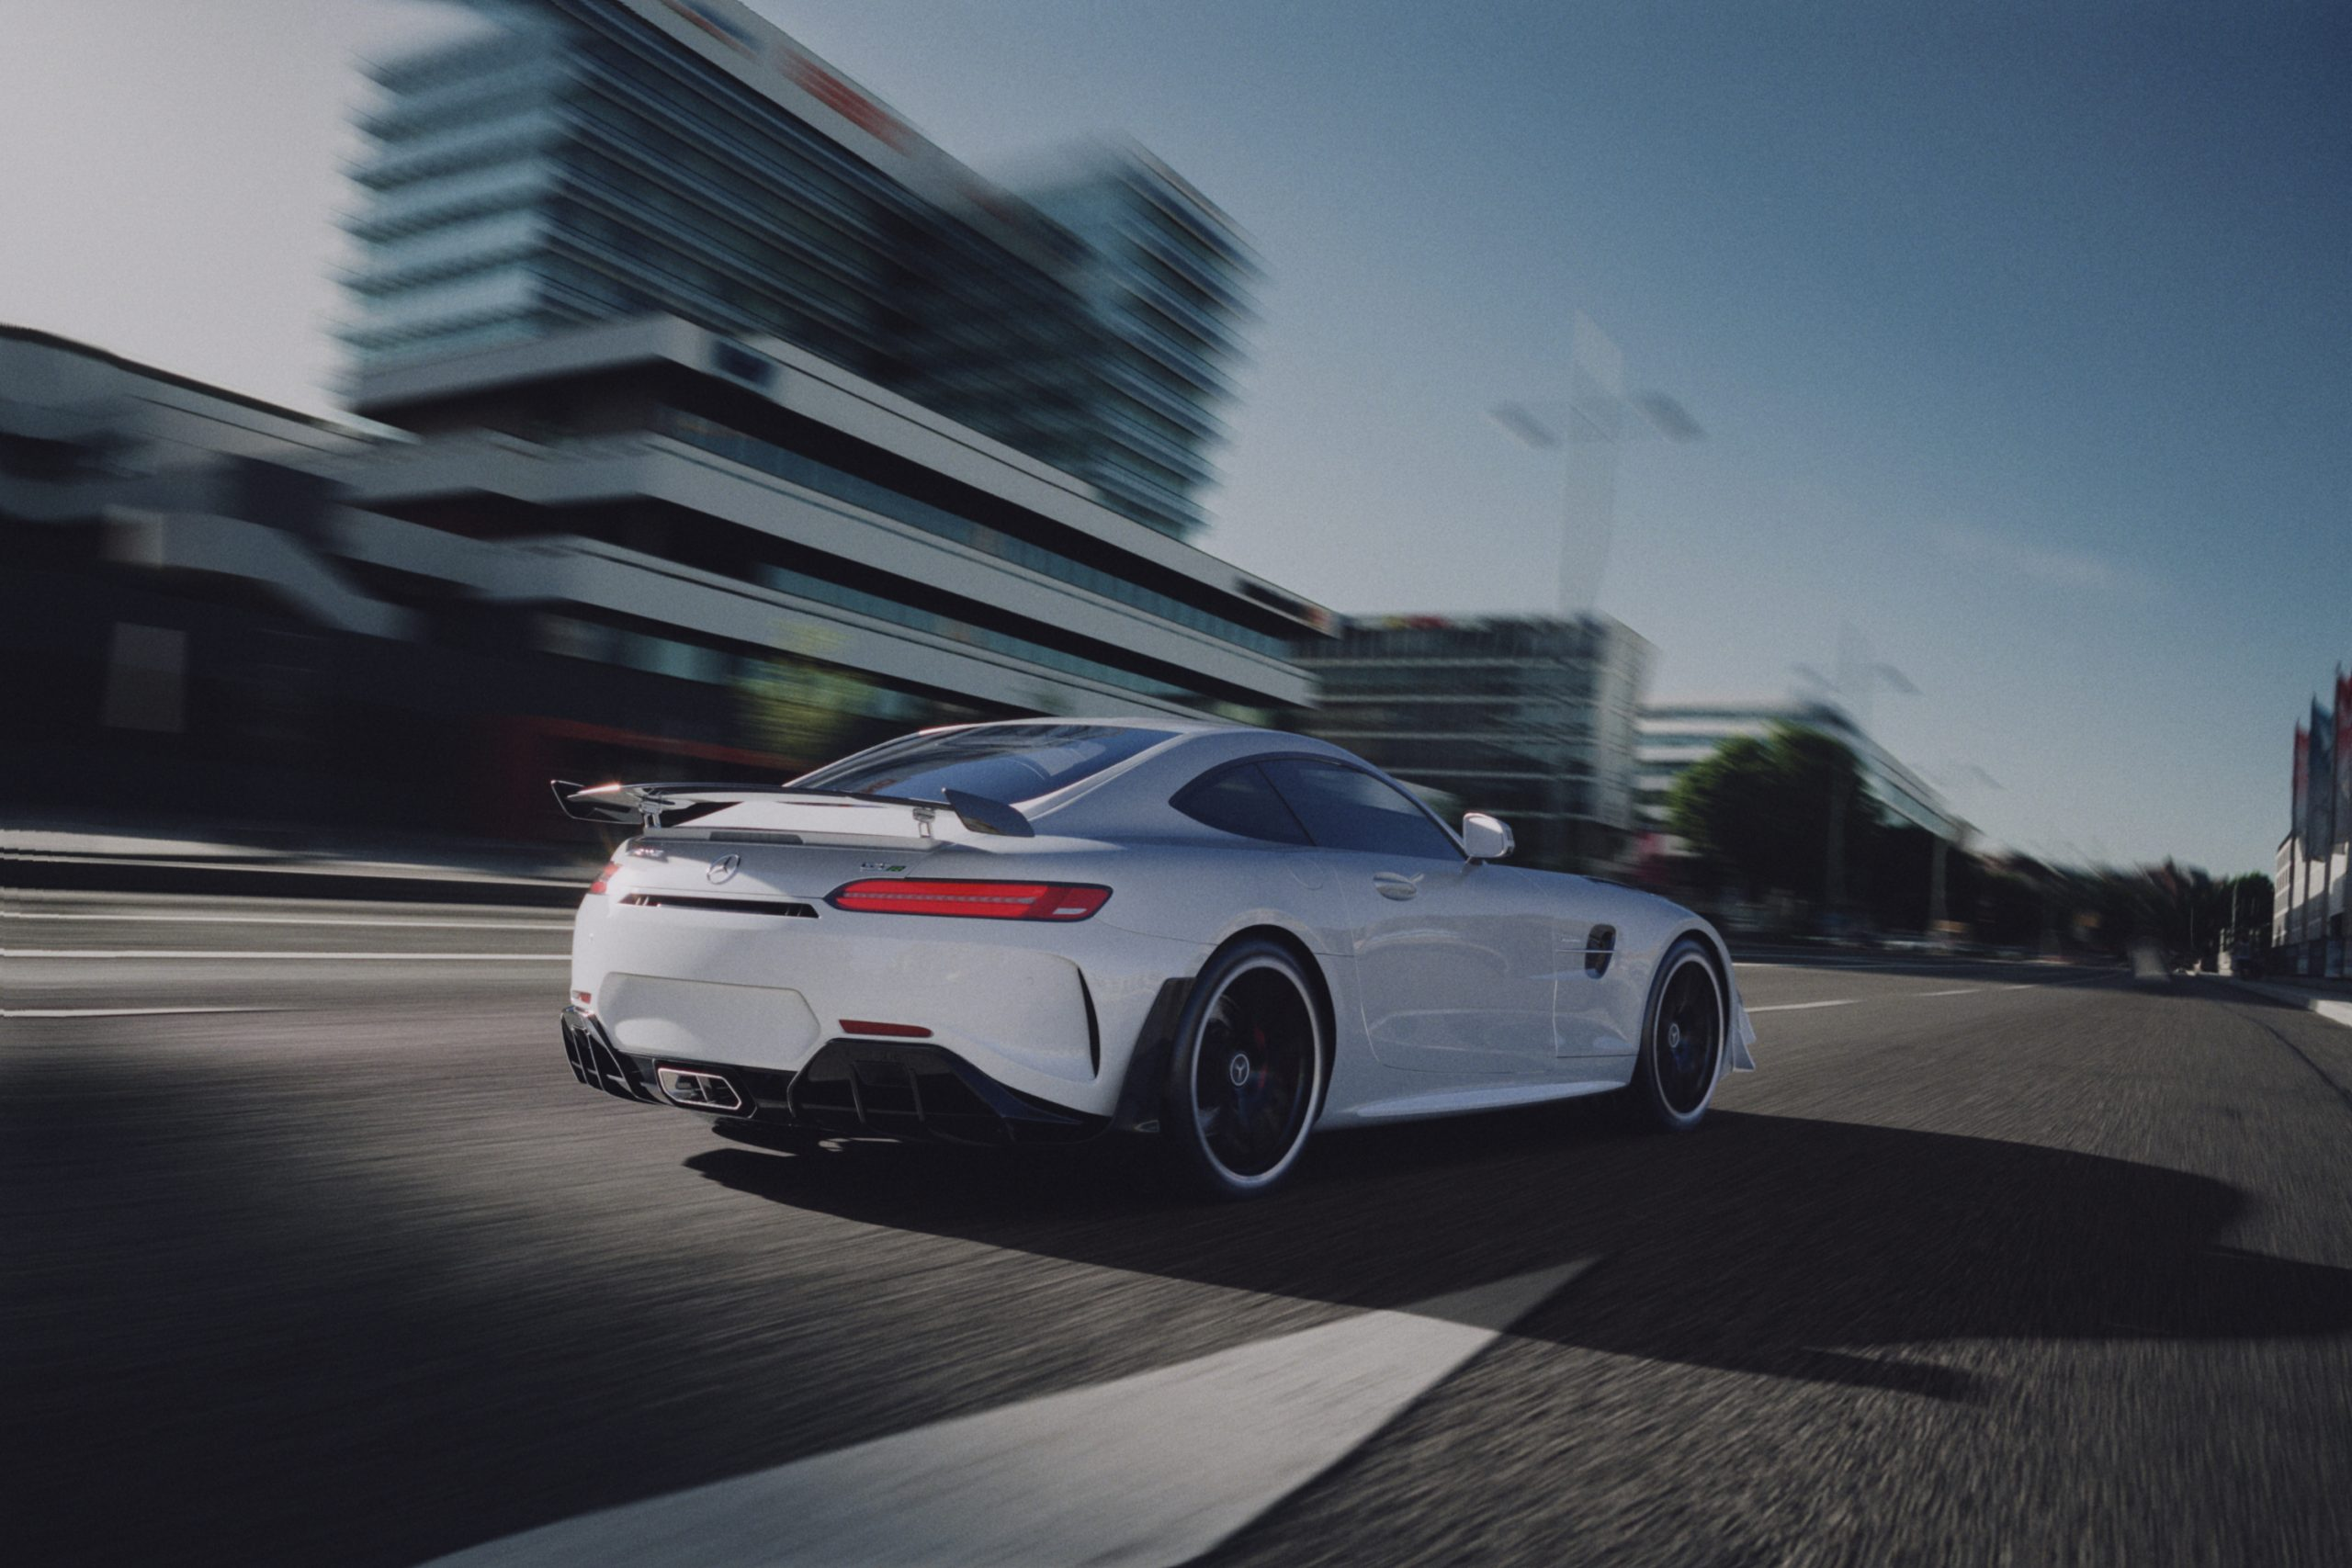 BLMRS_AMG_GT_004_GRADED